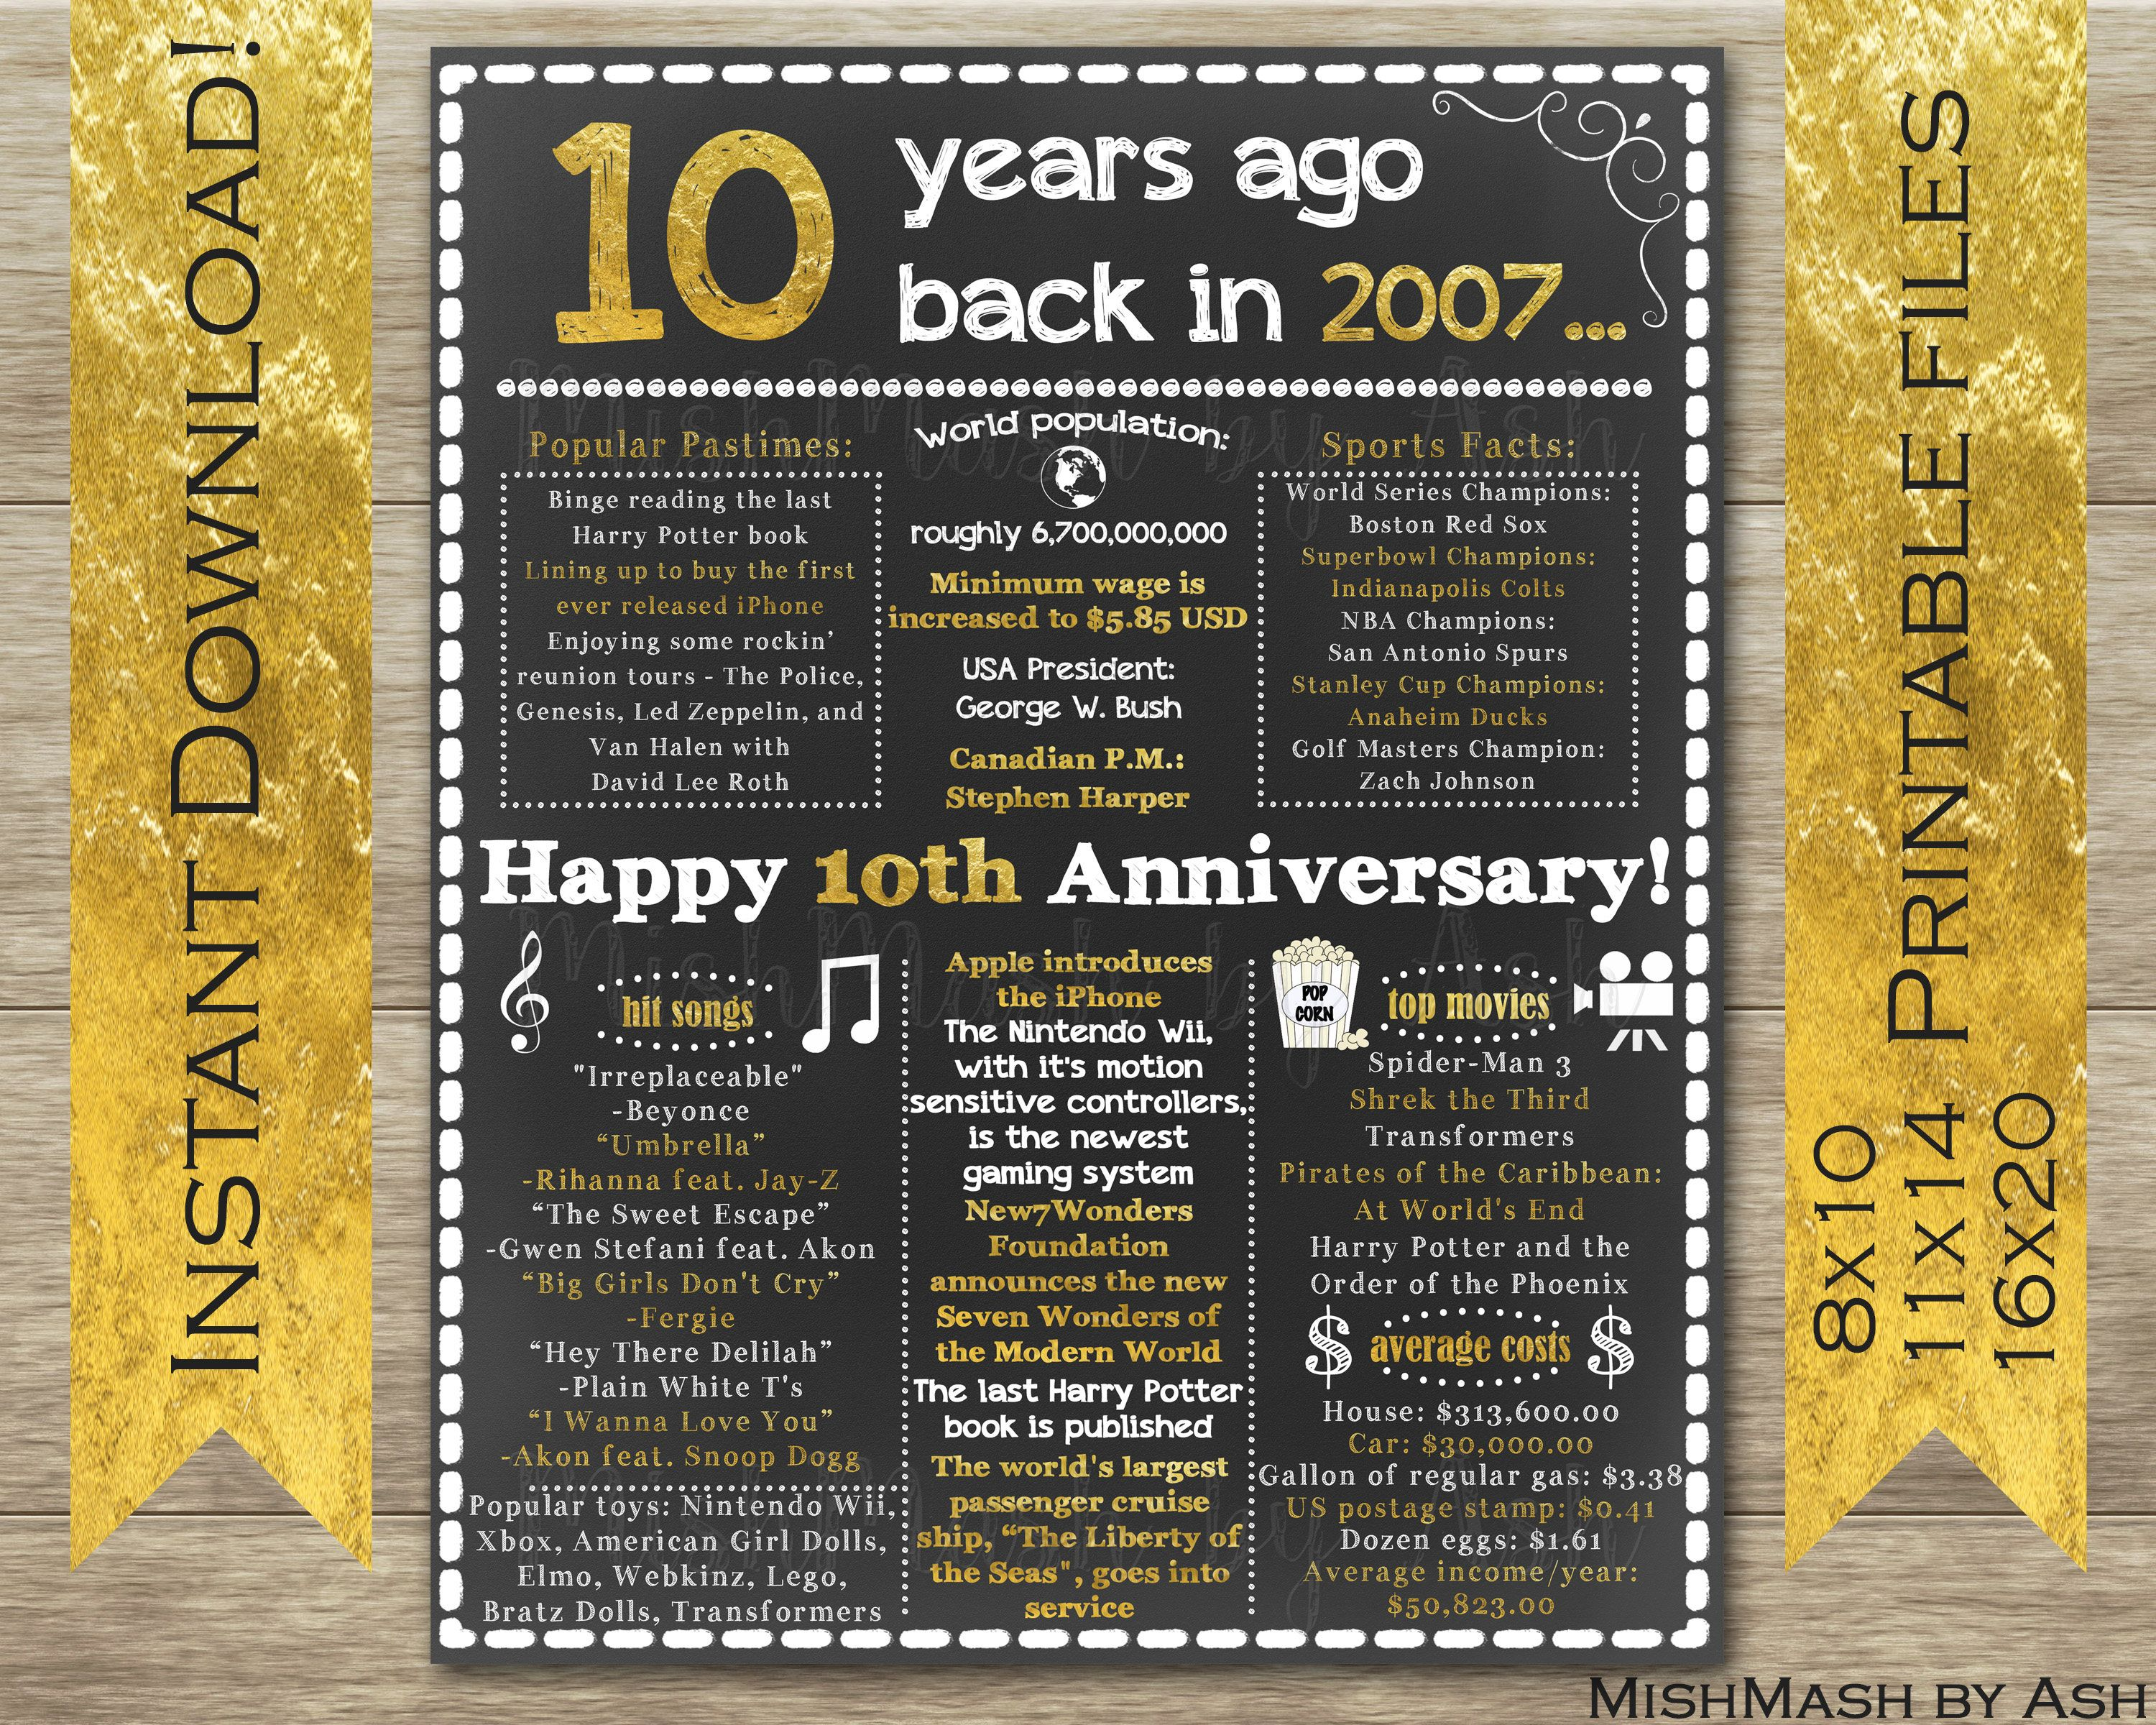 10th Anniversary Gift Ideas 10th Anniversary Poster 10th Anniversary Sign Happy 10th Anniversary 10 Years Ago 10th Wedding Anniversary by mishmashbyash